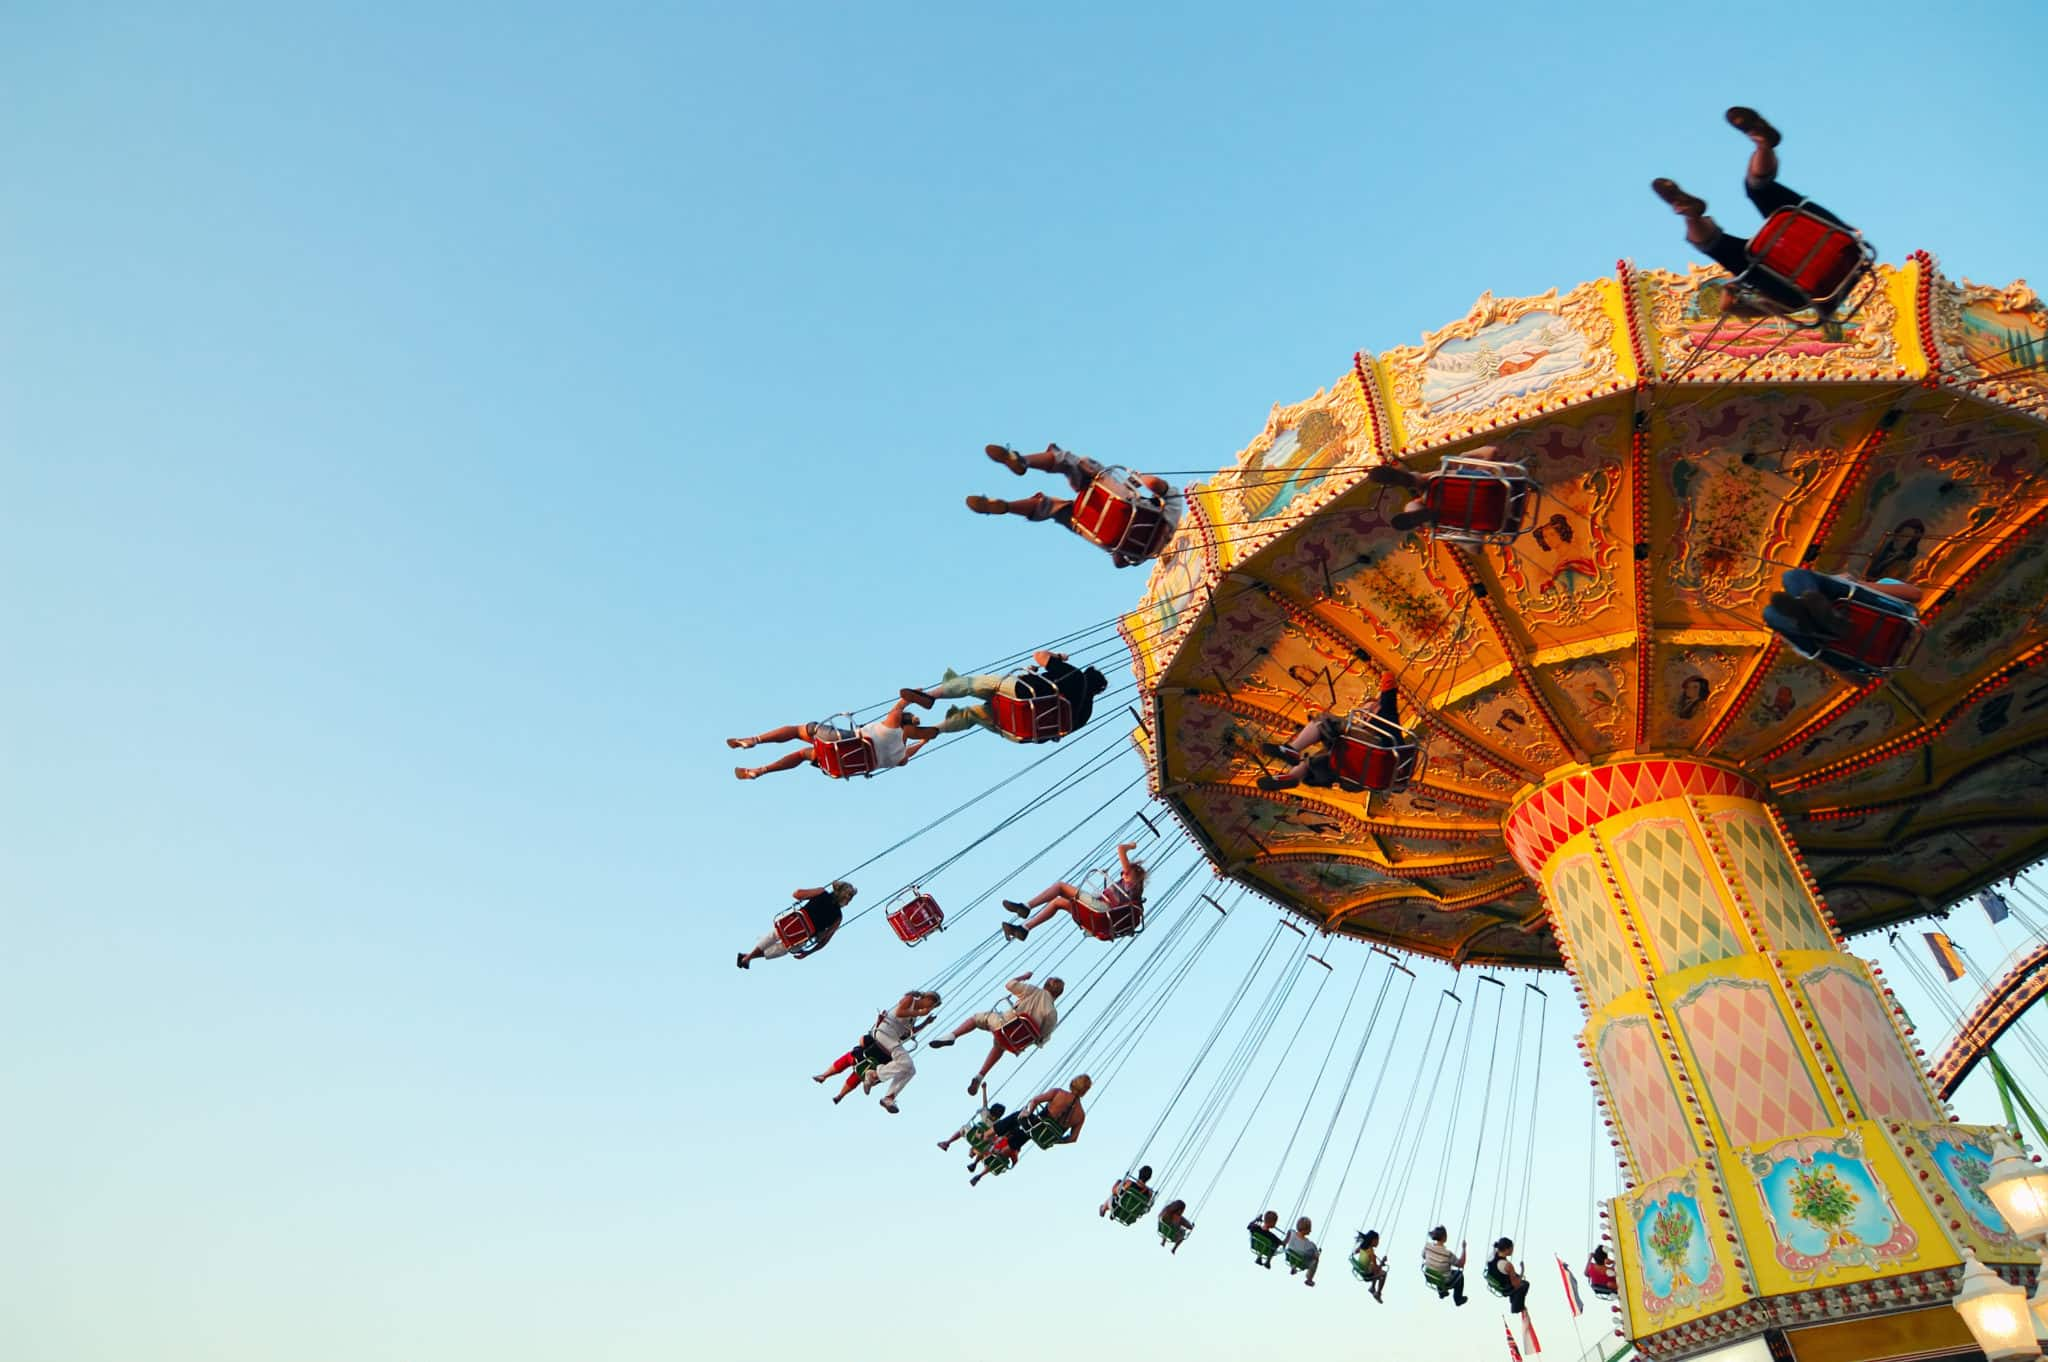 Lawsuits for Amusement Park Injuries